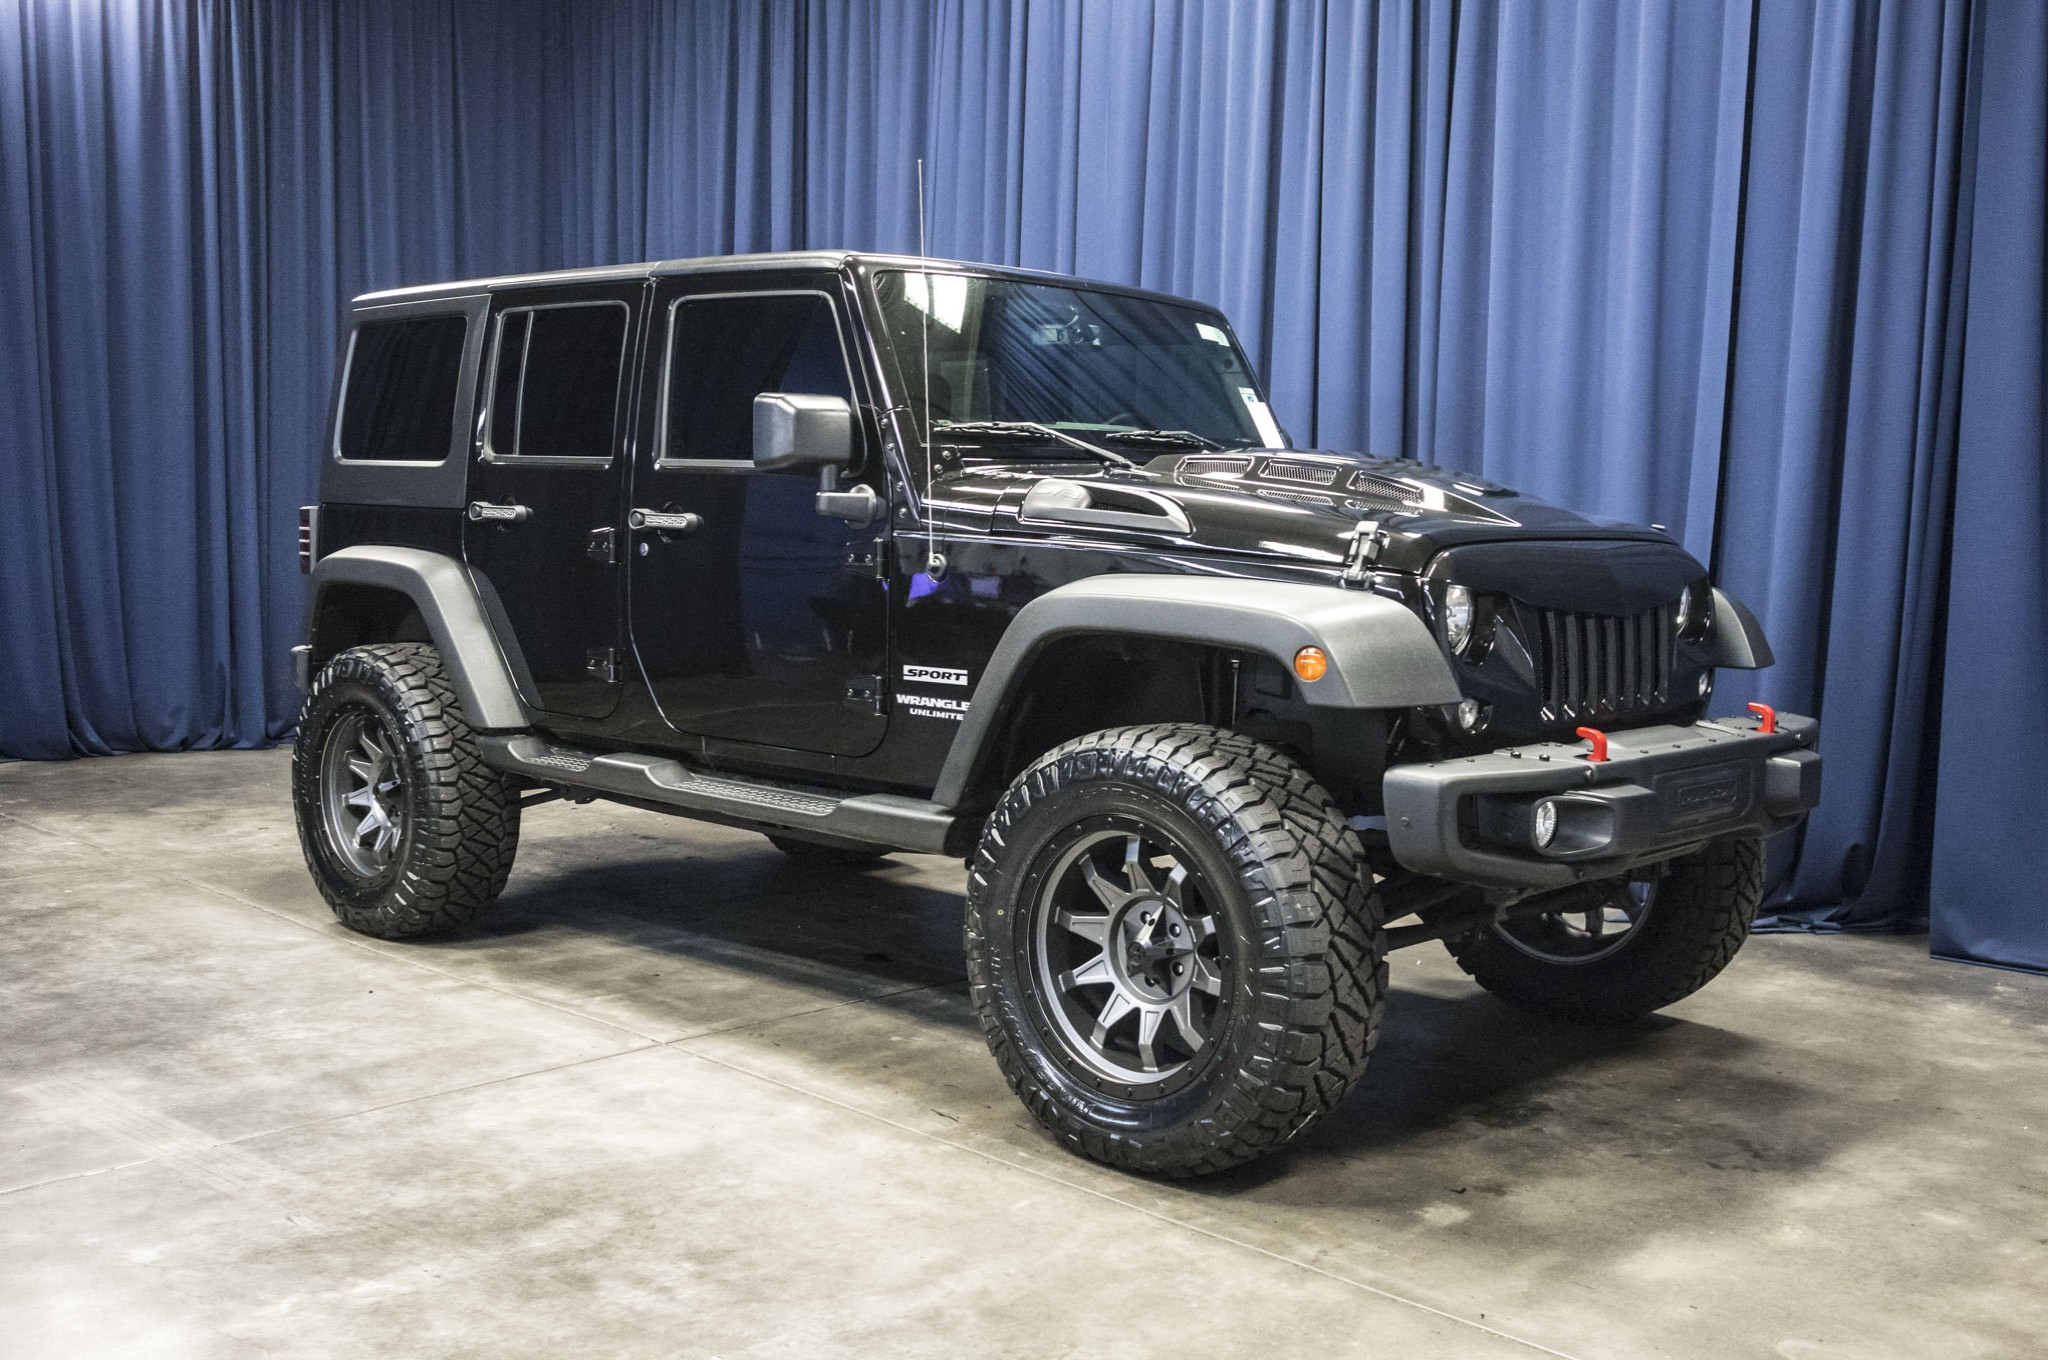 Used Lifted 2015 Jeep Wrangler Unlimited Sport 4x4 JK SUV For Sale